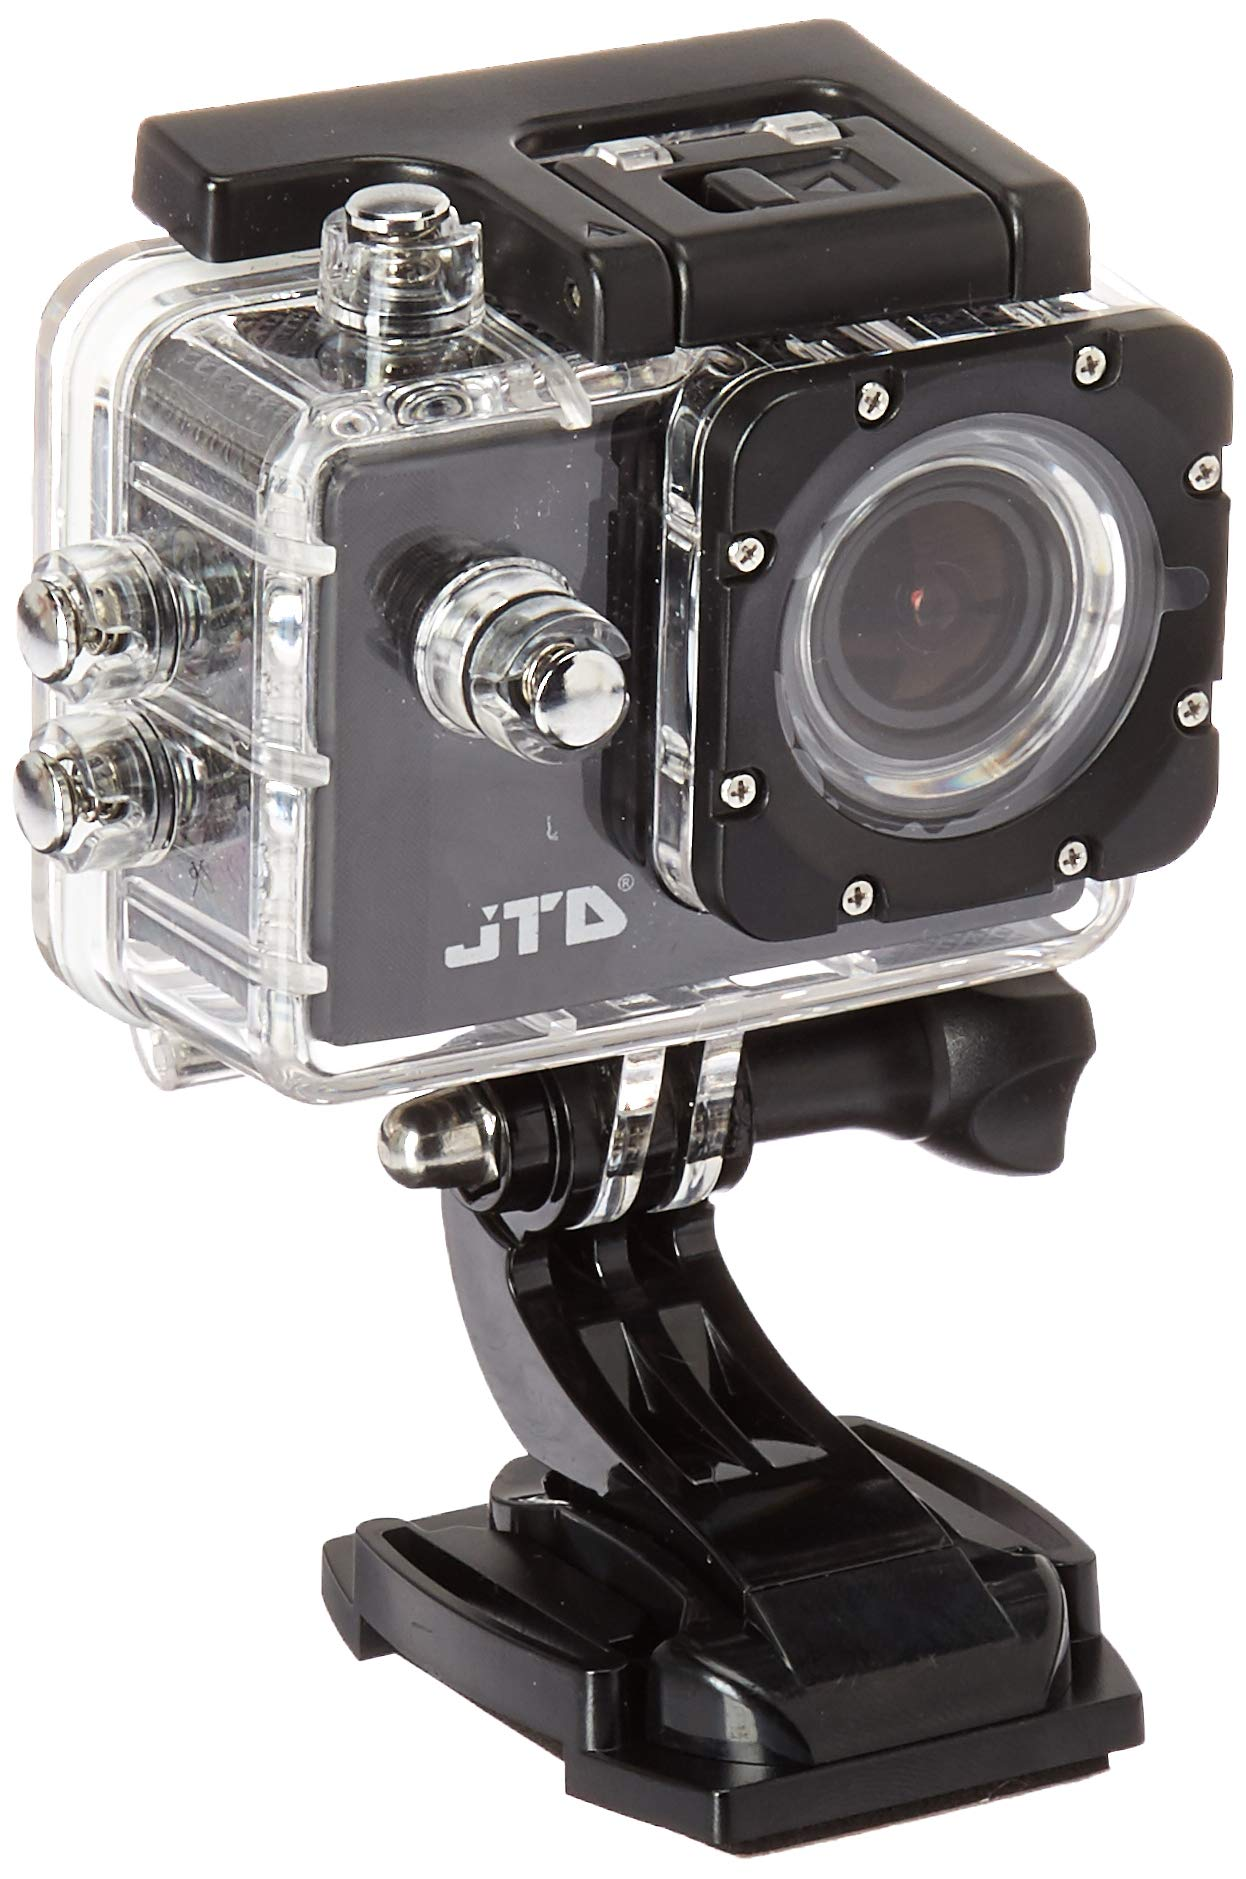 JTD J-EXP 2.0 Premium Sport DV Action Camera 12MP 1080P 170 Degree Angle Anti-Glare Coating Lens Sport Camera Waterproof Cam DV Camcorder Outdoor for Bicycle Motorcycle Diving Swimming (Black)